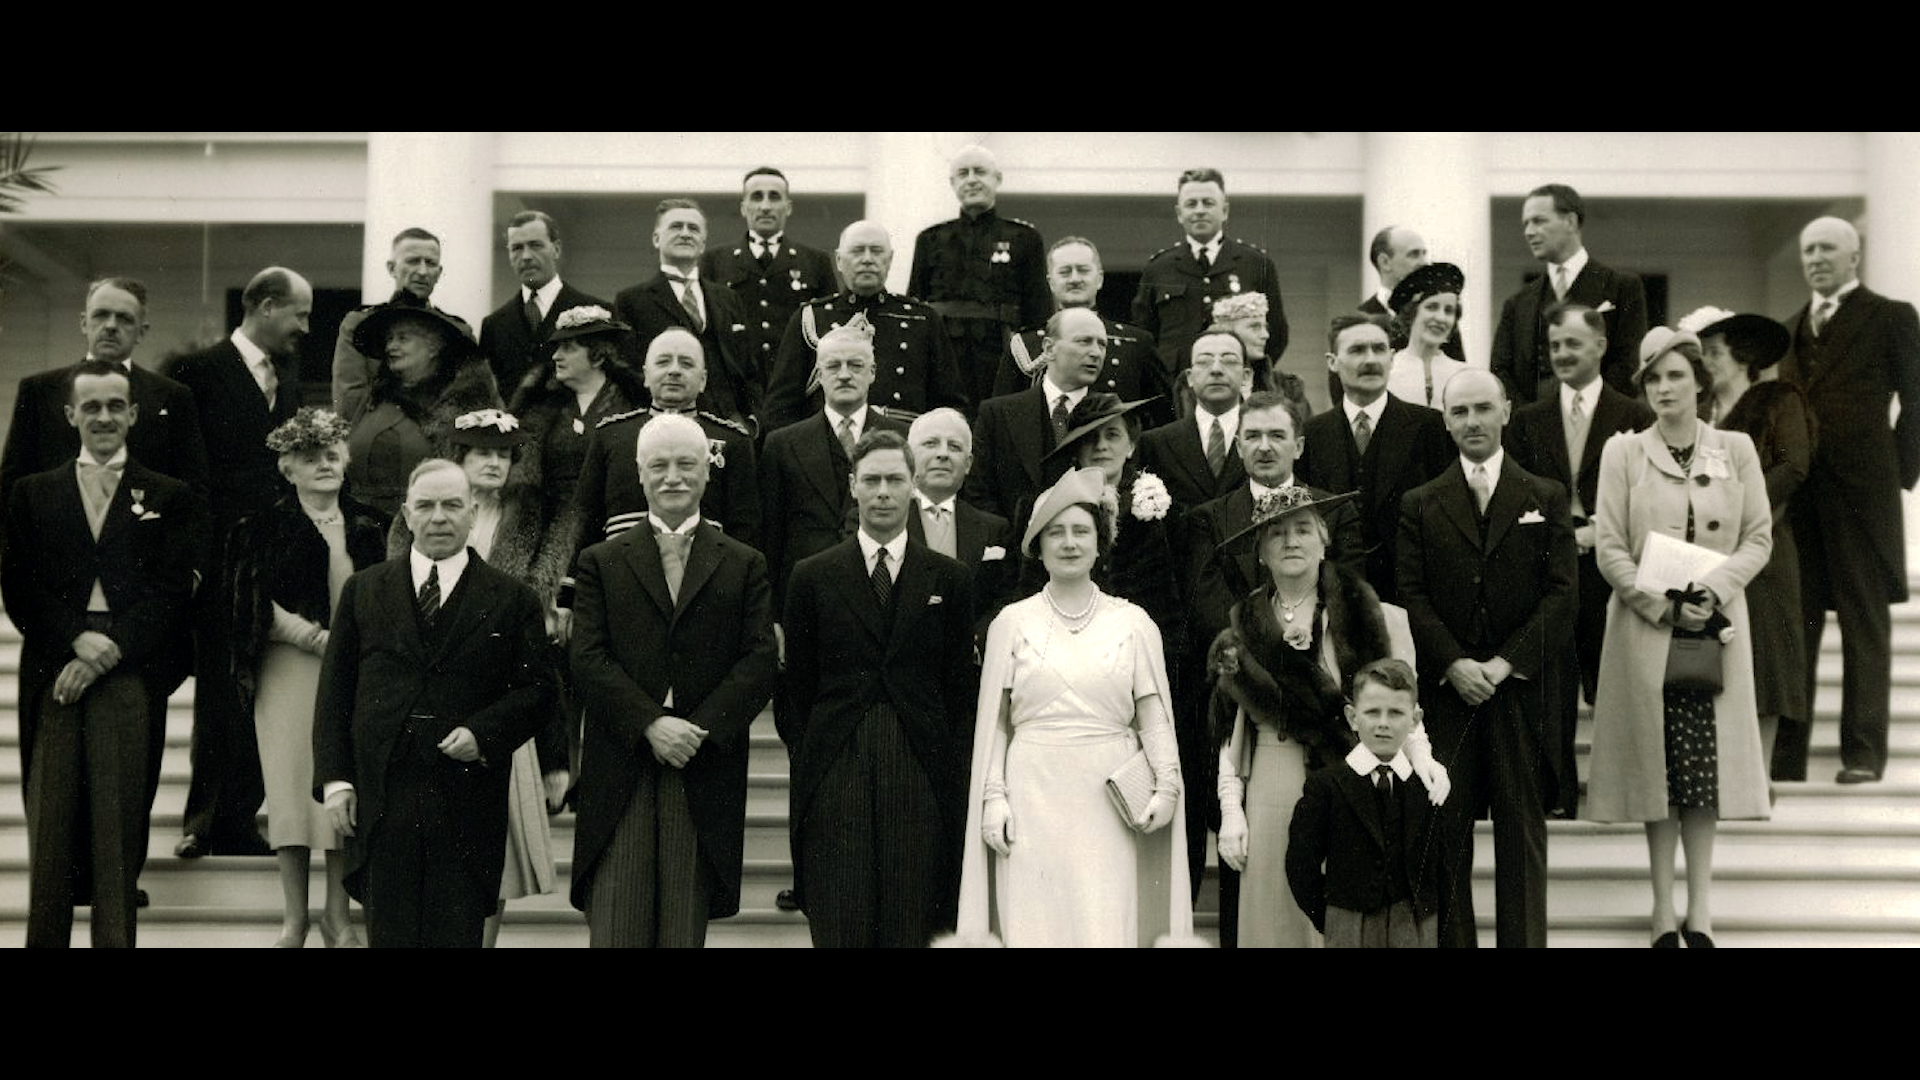 La visite royale de 1939 | revue Cap-Aux-Diamants